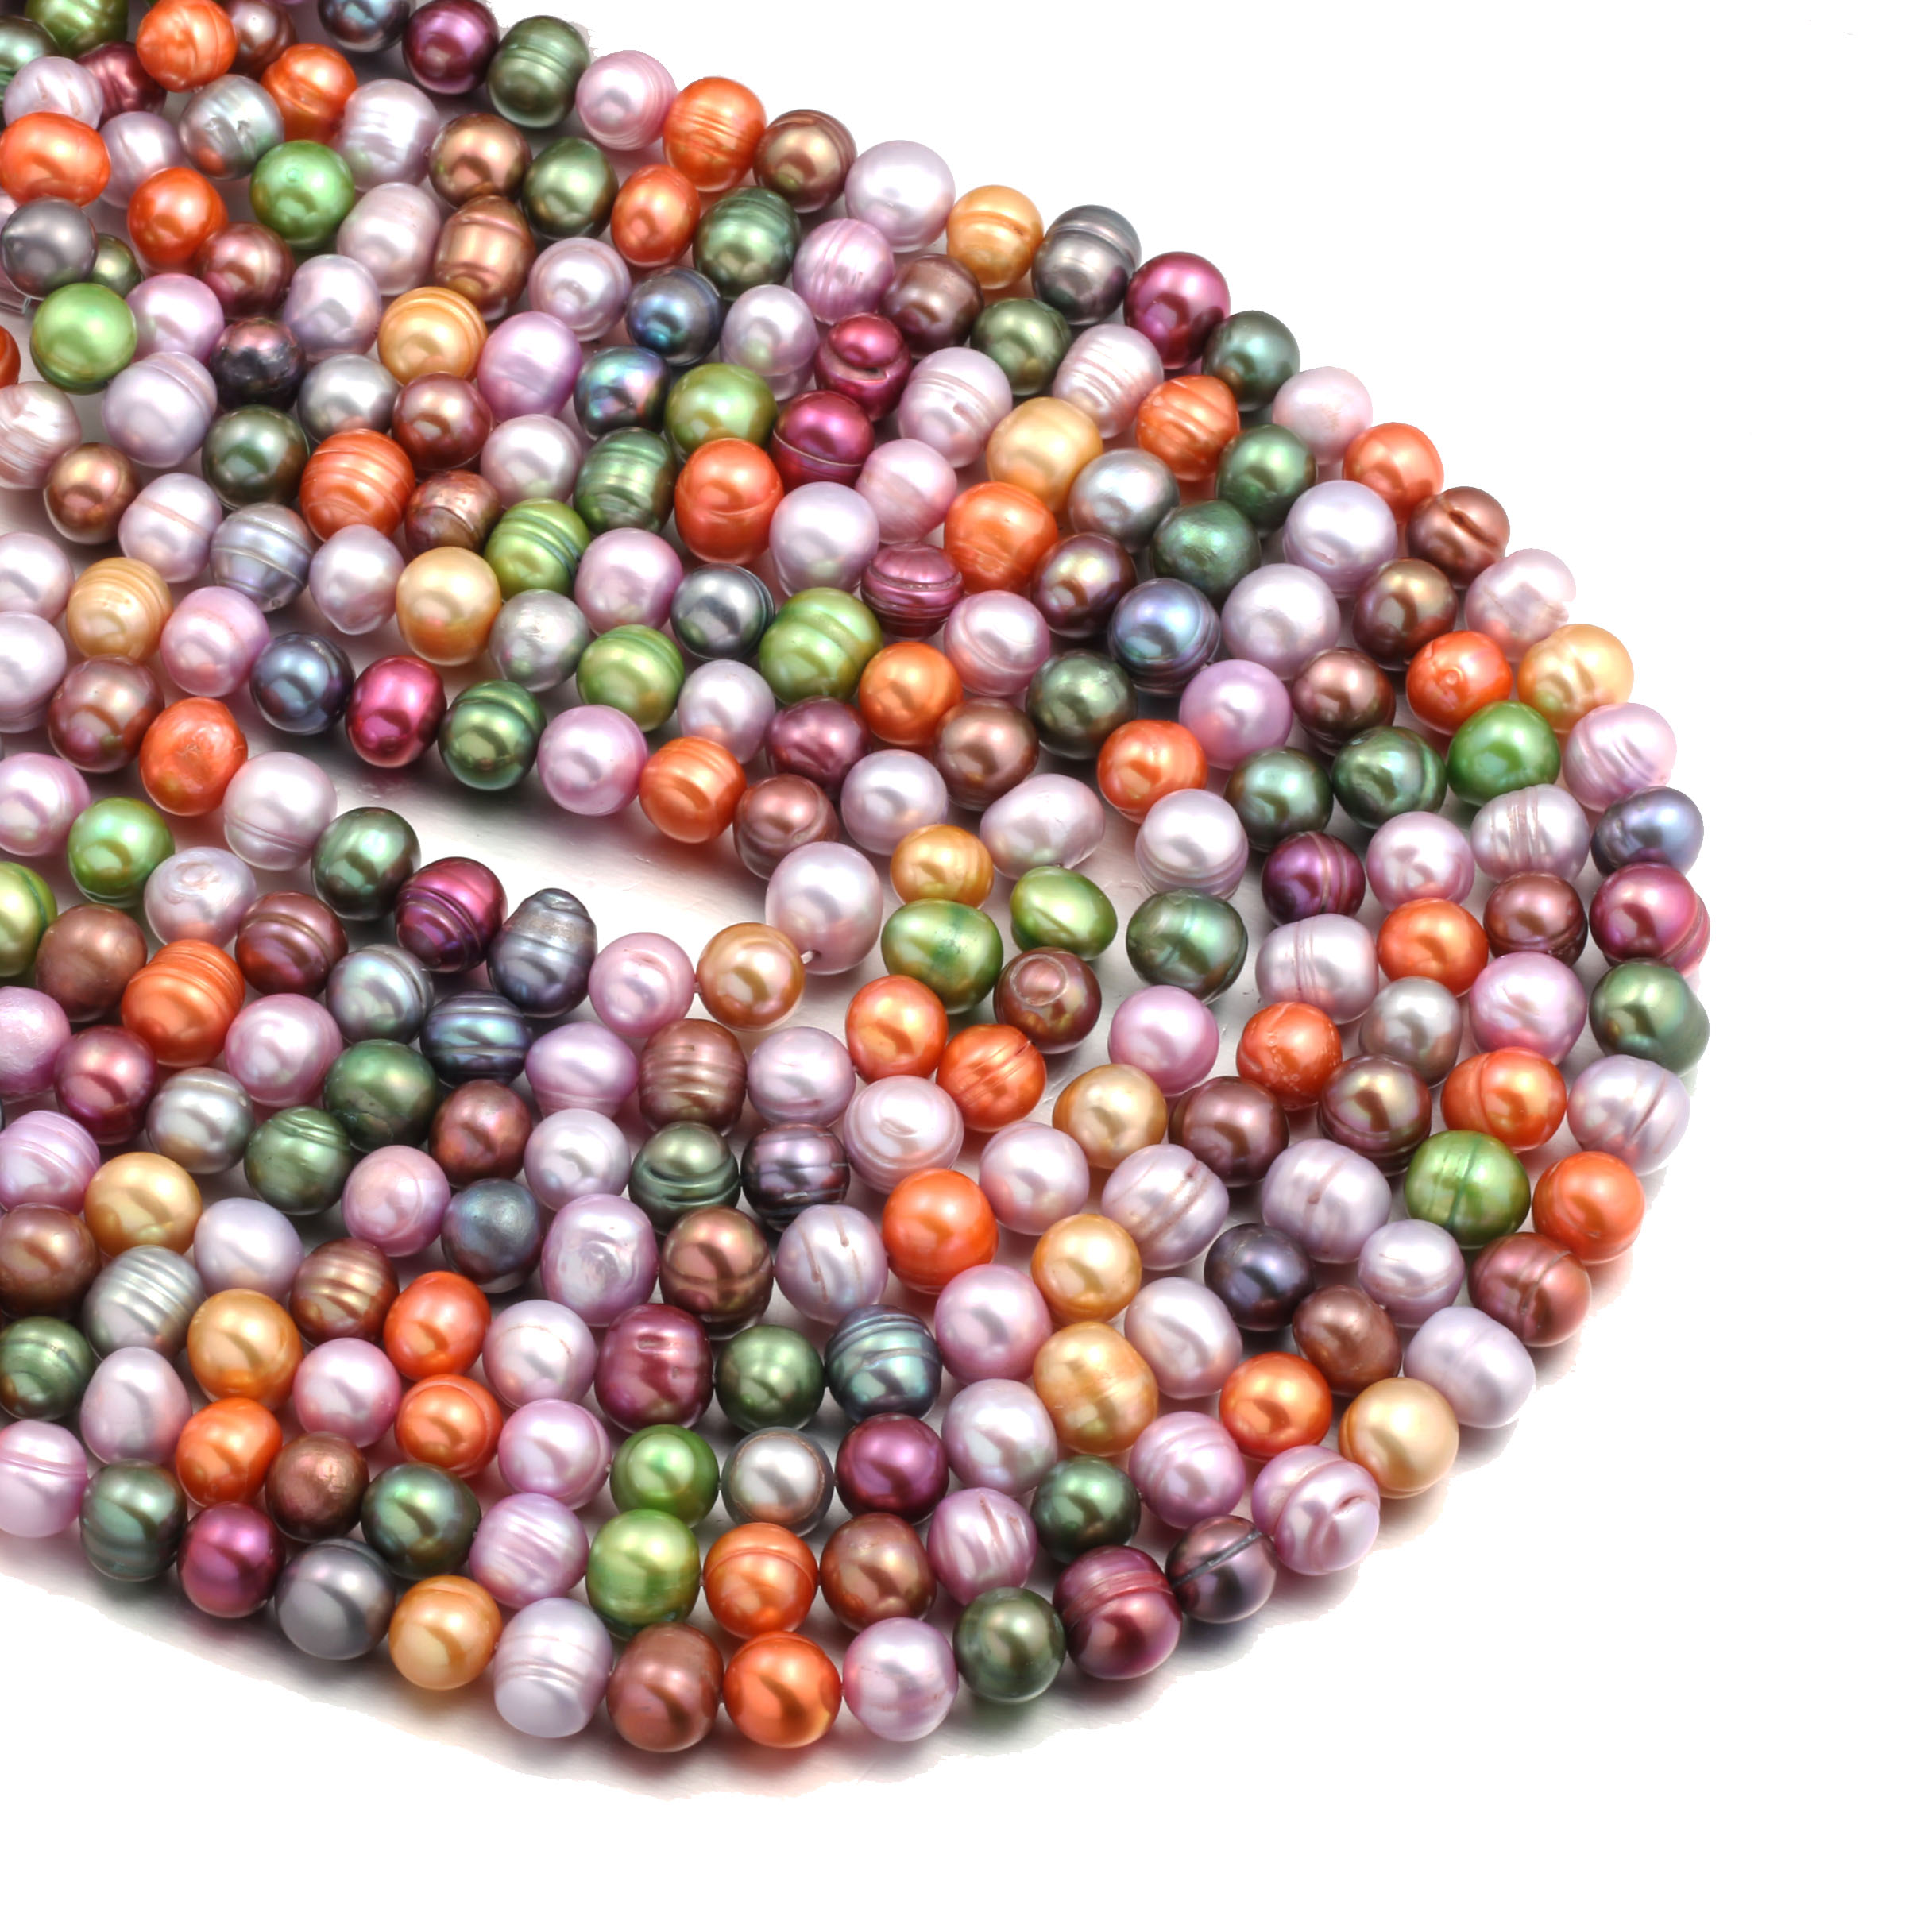 Natural Freshwater Pearl Beads High Quality 36cm Color mixing Round Punch Loose Beads for DIY Necklace Bracelet Jewelry Making